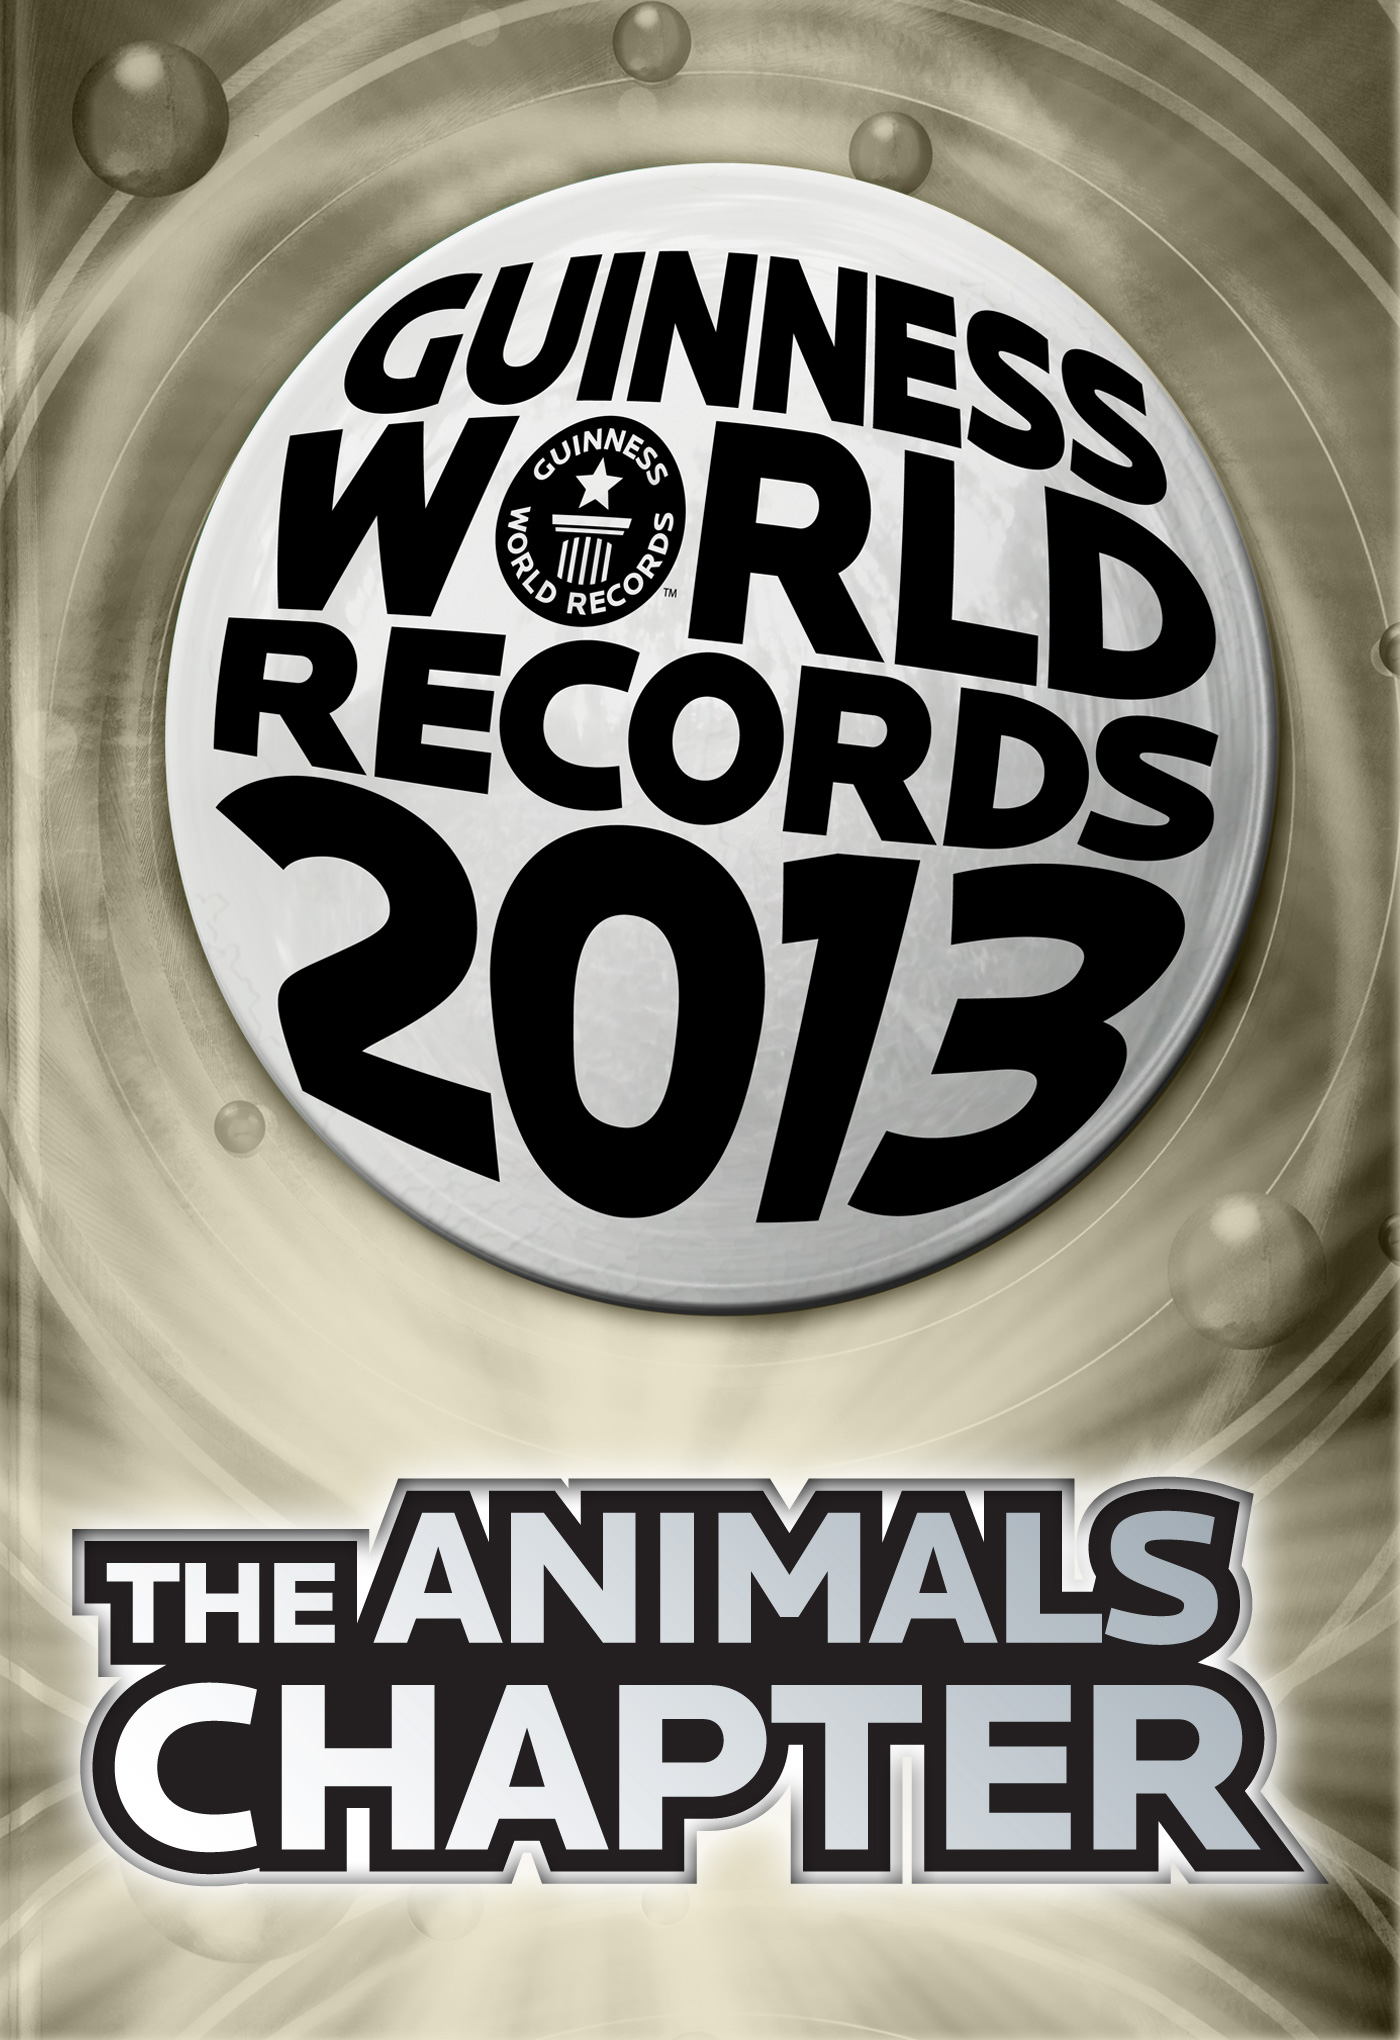 Guinness World Records 2013 - The Animals Chapter